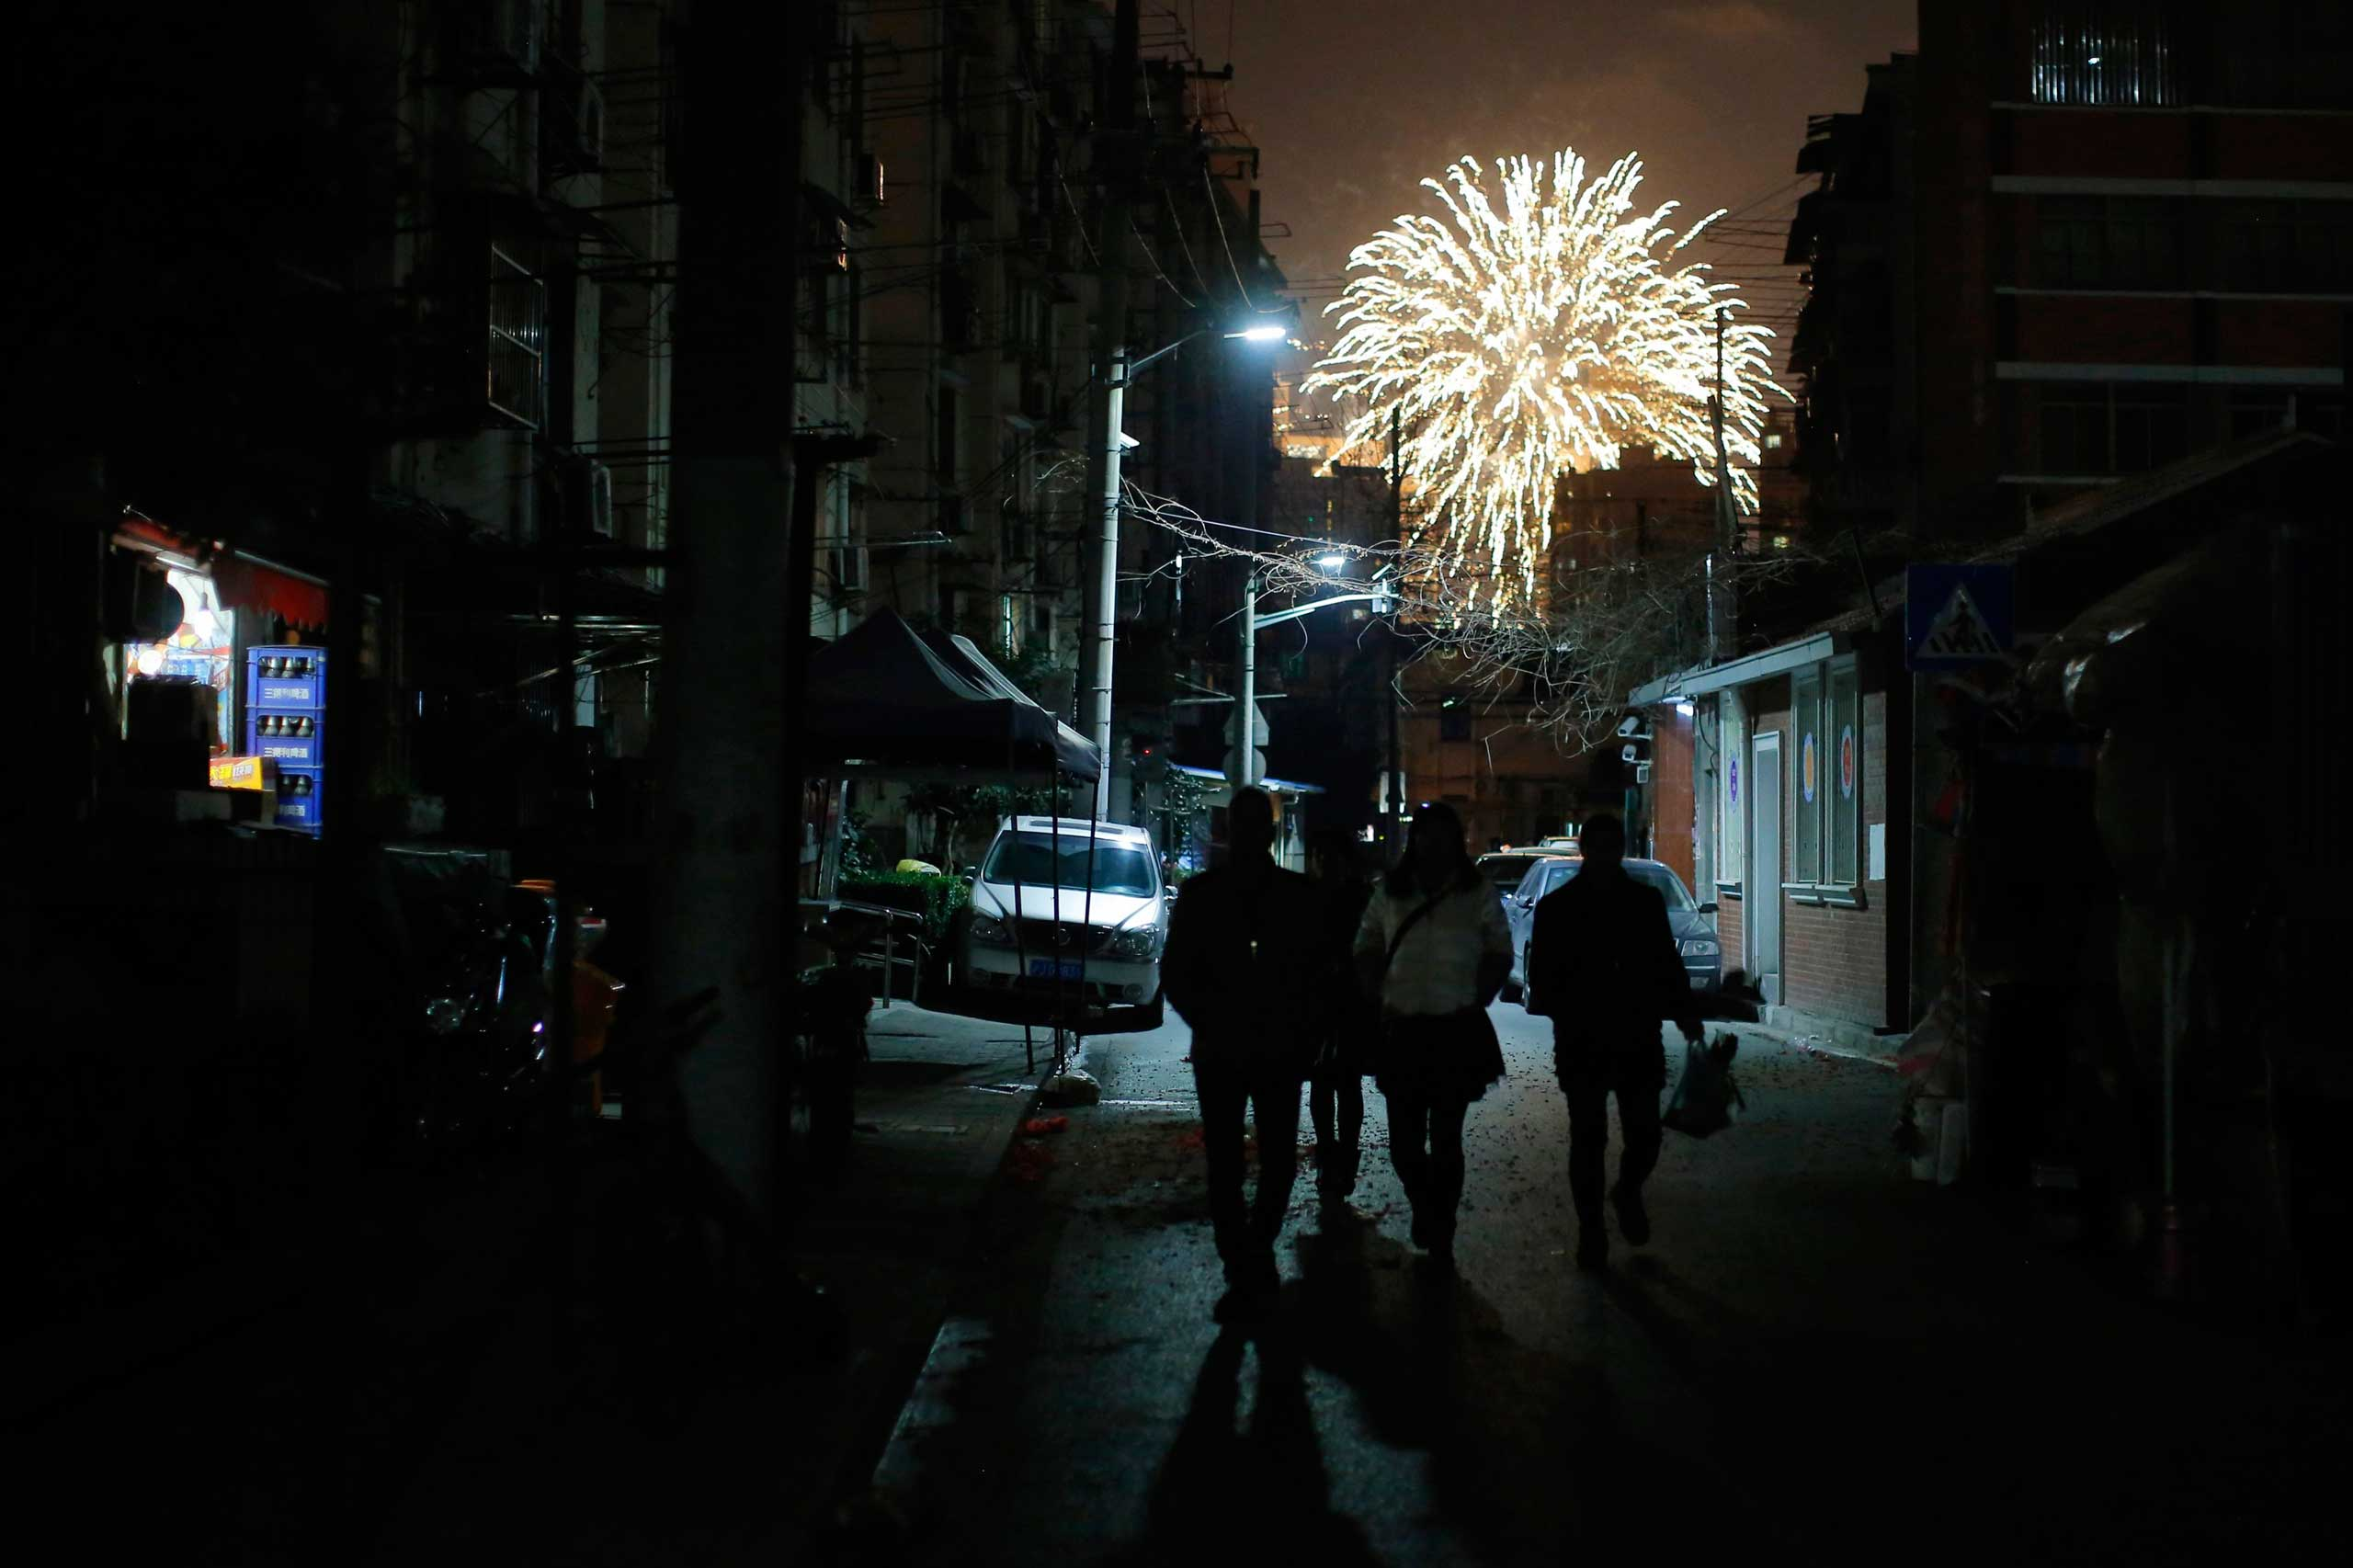 People walk as residents set off fireworks as part of Lunar New Year celebrations in Shanghai, Feb. 19, 2015.